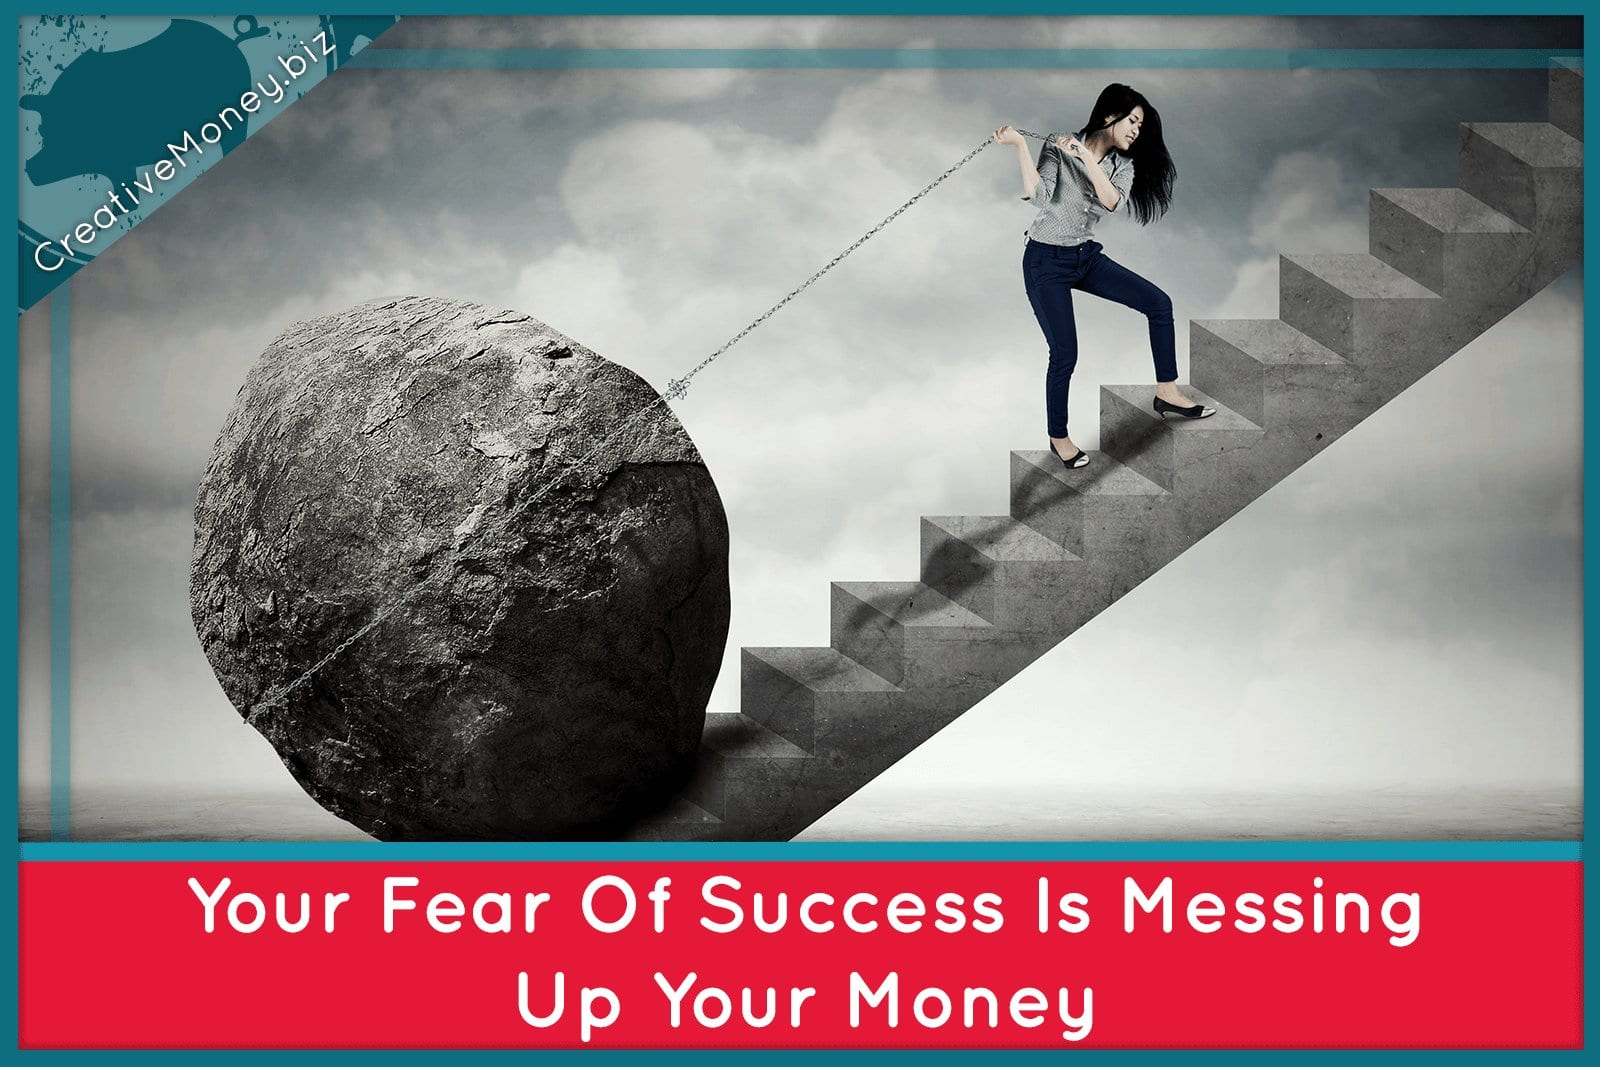 Your fear of success is messing up your money